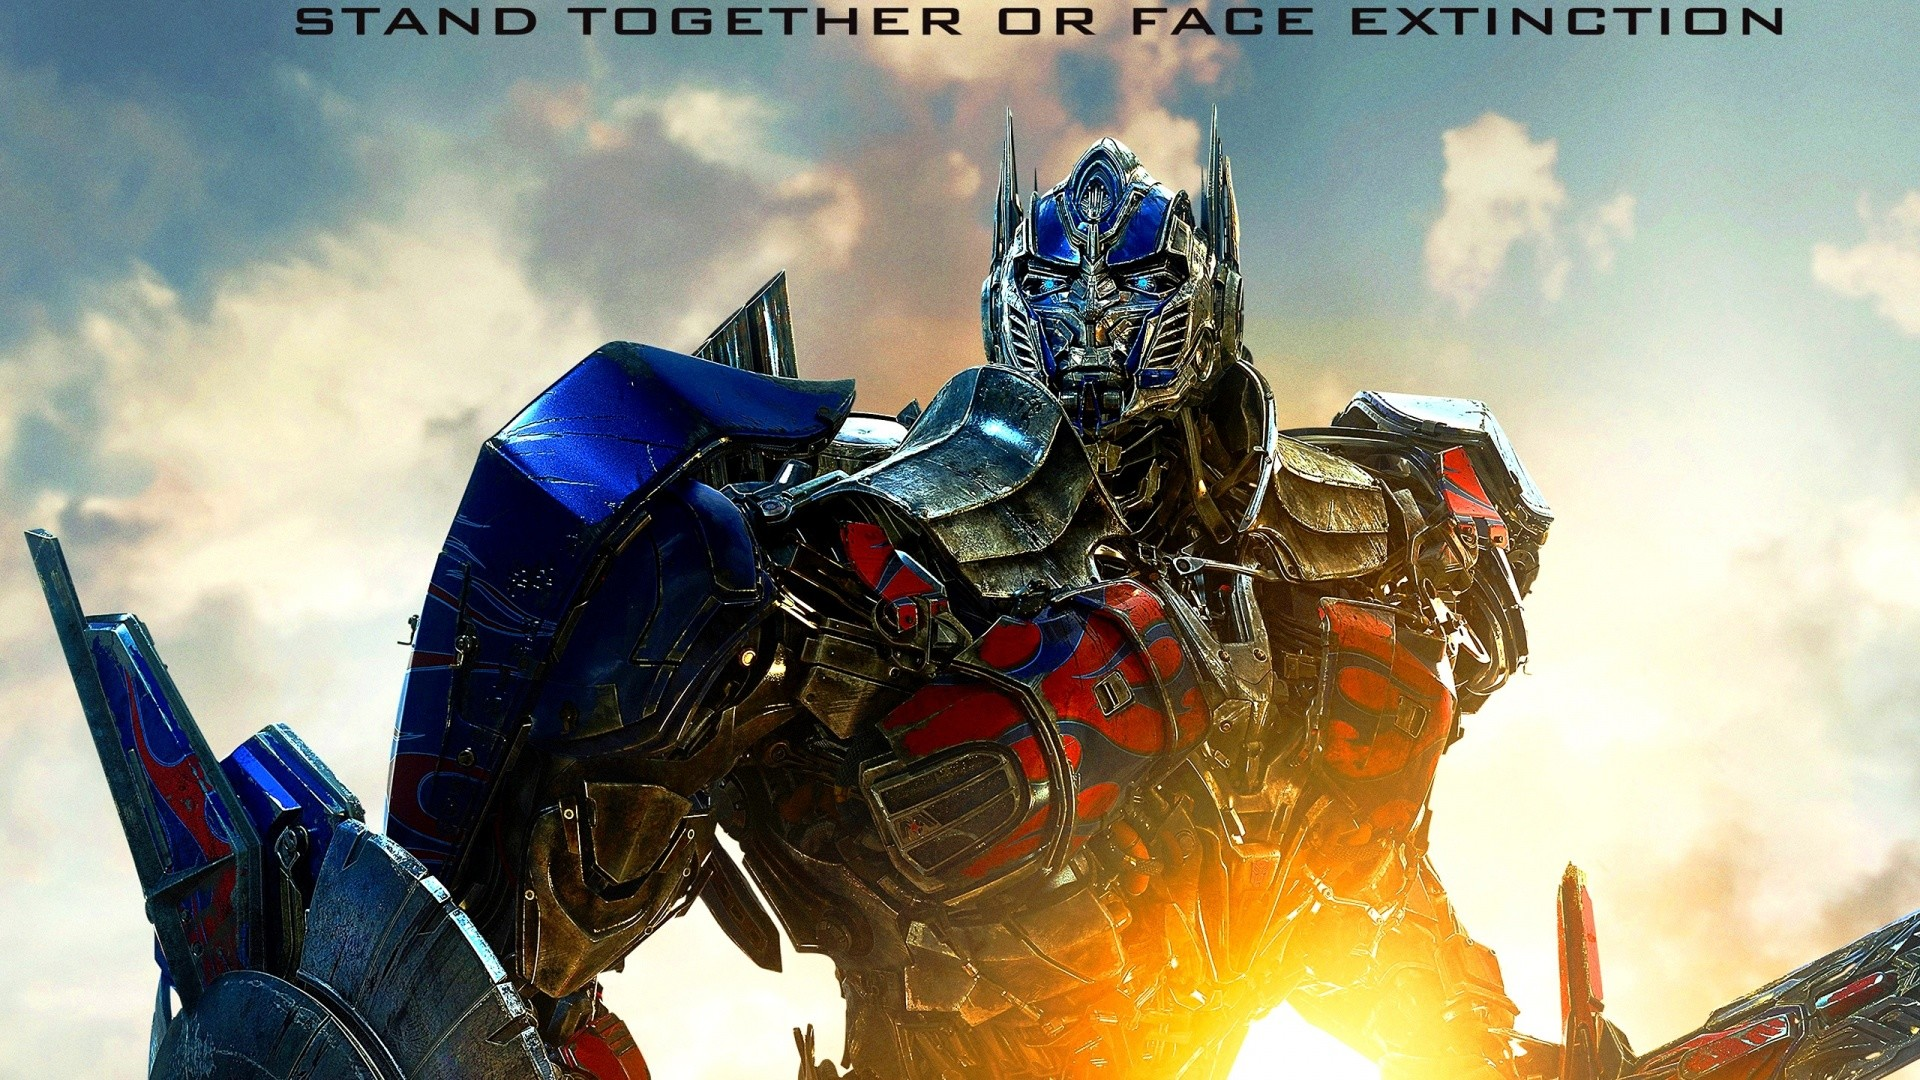 Transformers Age Of Extinction Hd Wallpaper [1920 x 1080] Need #iPhone #6S  #Plus #Wallpaper/ #Background for #IPhone6SPlus? Follow iPhone 6S Plus 3…